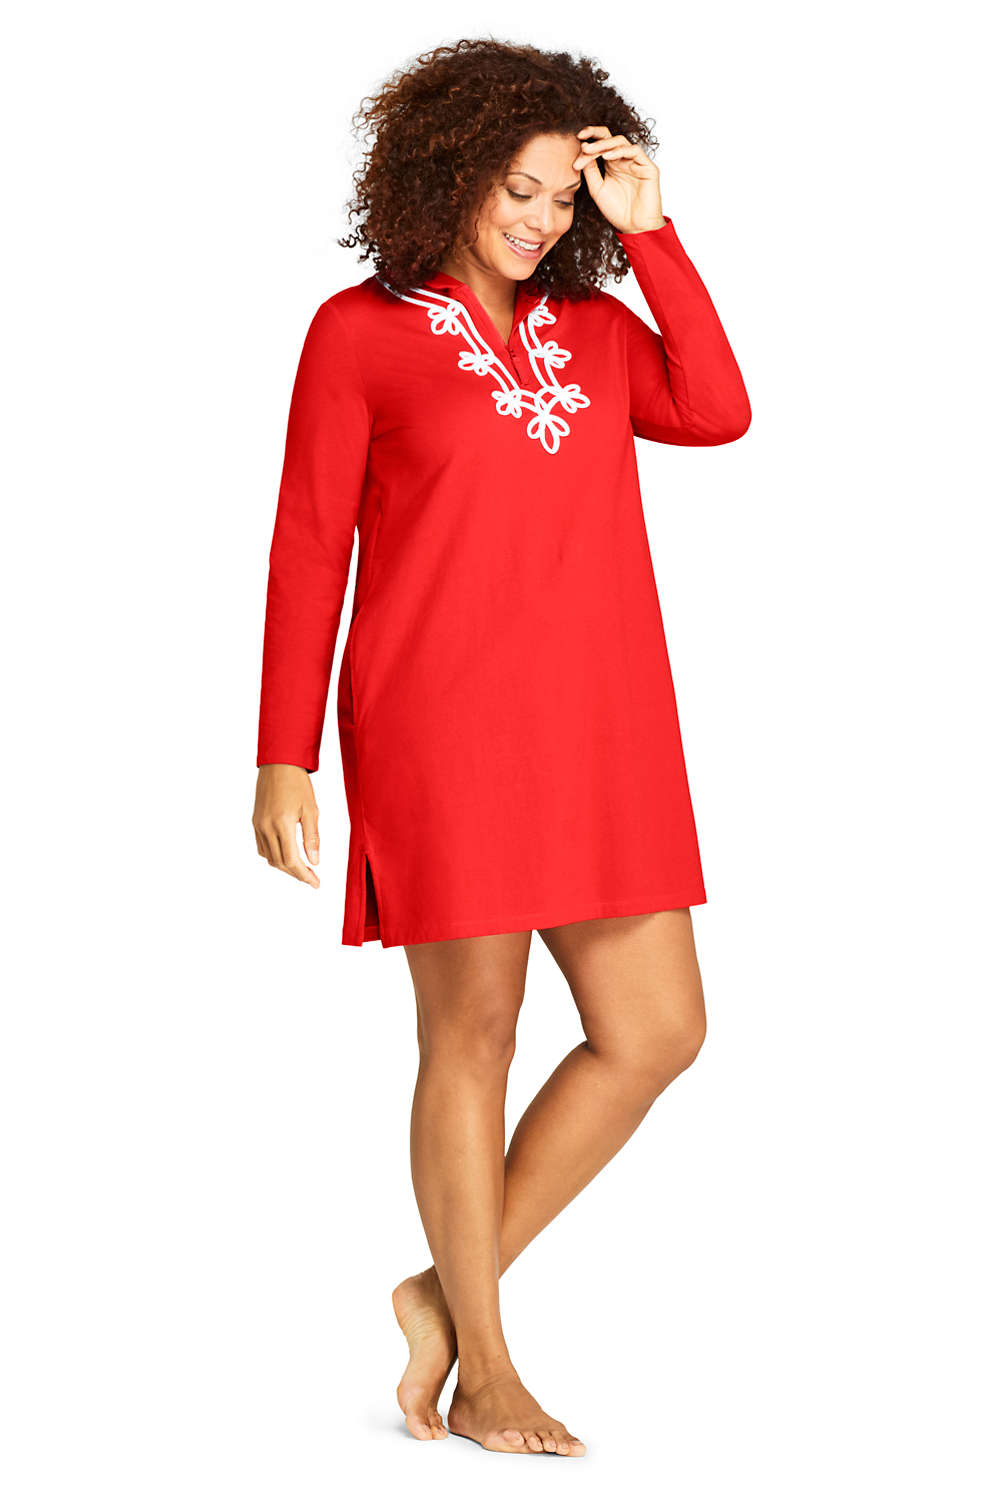 98e464c271 Women's Plus Size Cotton Jersey Embelished Hooded Half Zip Swim Cover-up  from Lands' End